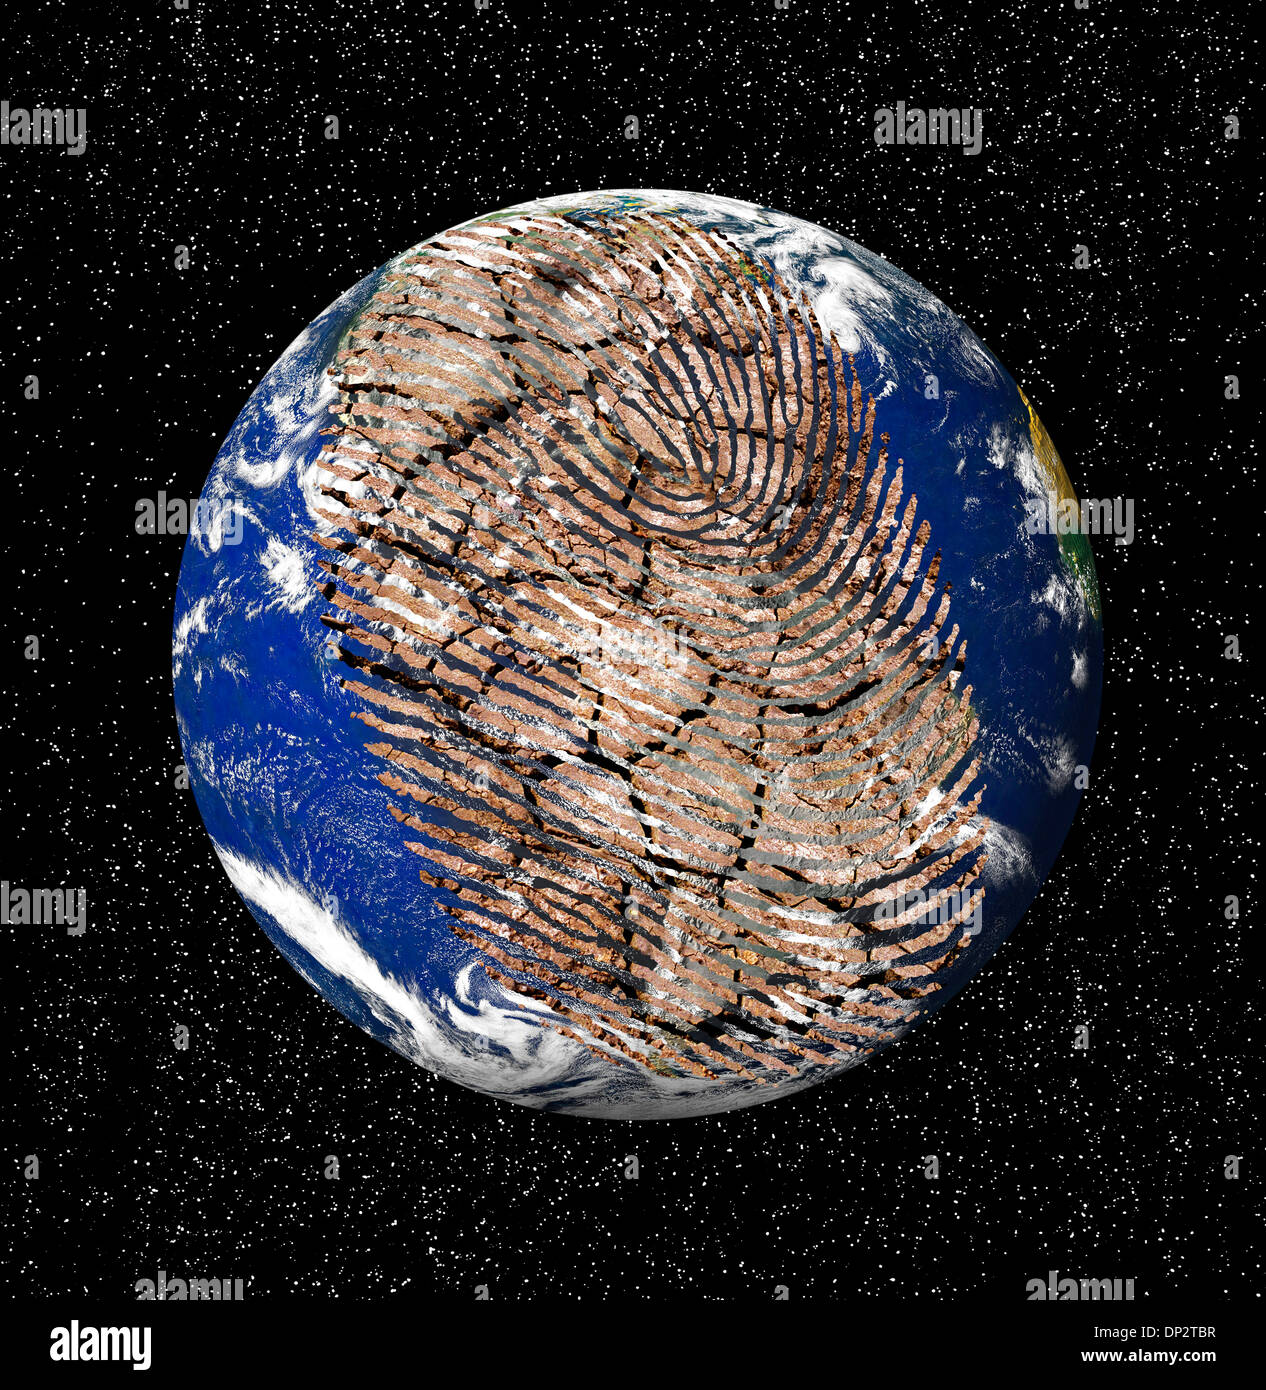 Human Impact On The Environment Artwork Stock Photo